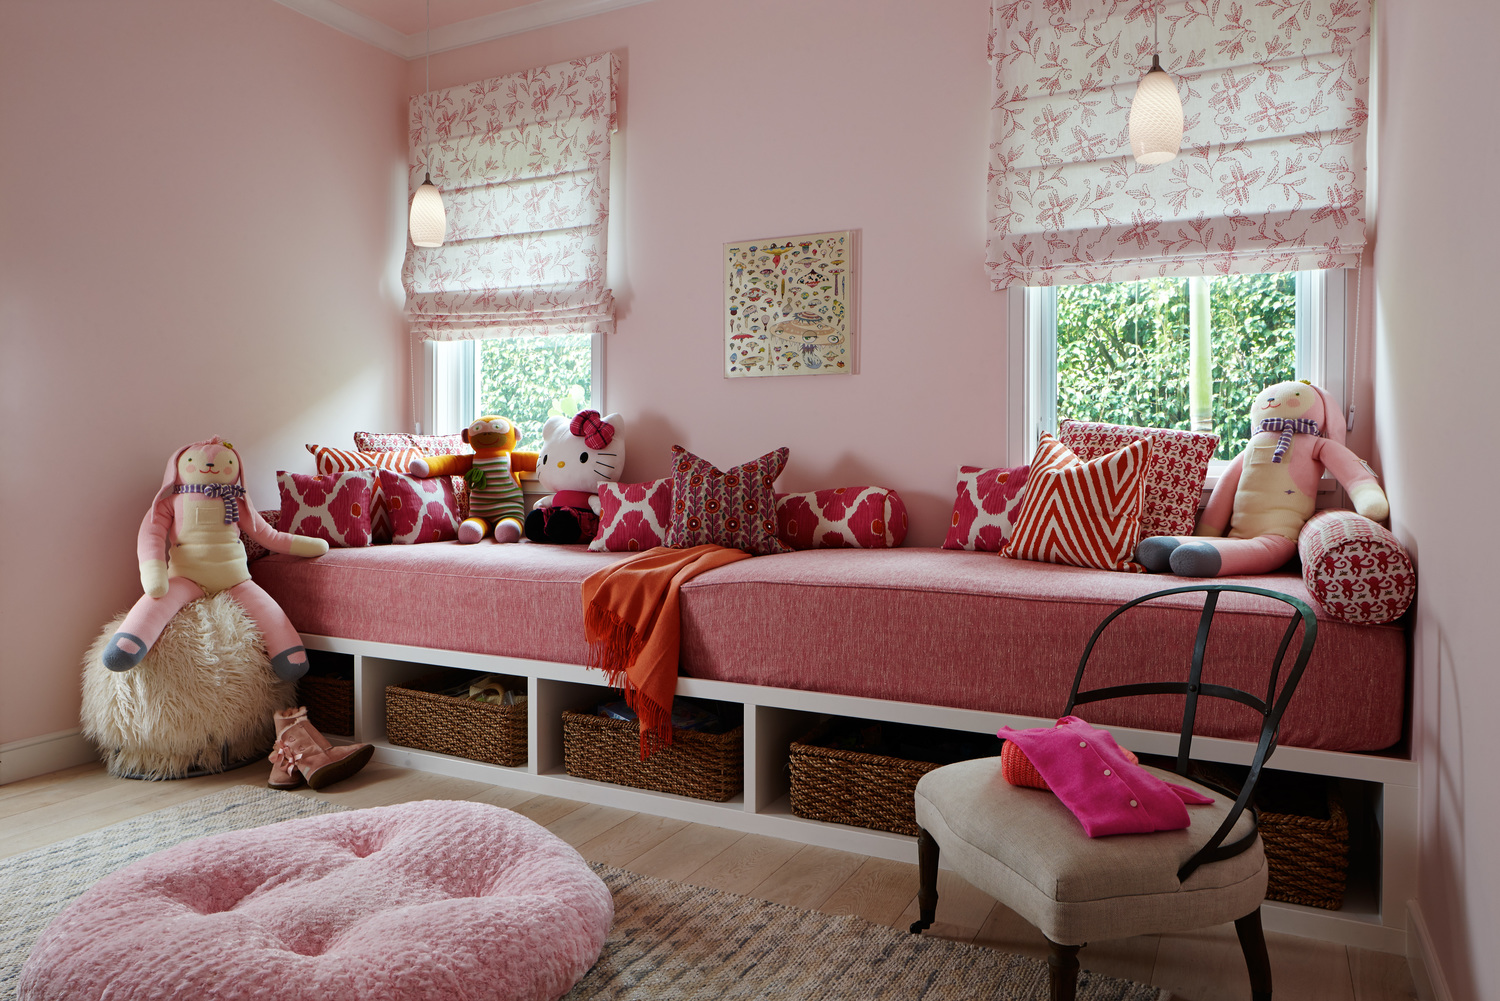 Home-Styling | Ana Antunes: Family Houses - Vacation in ...